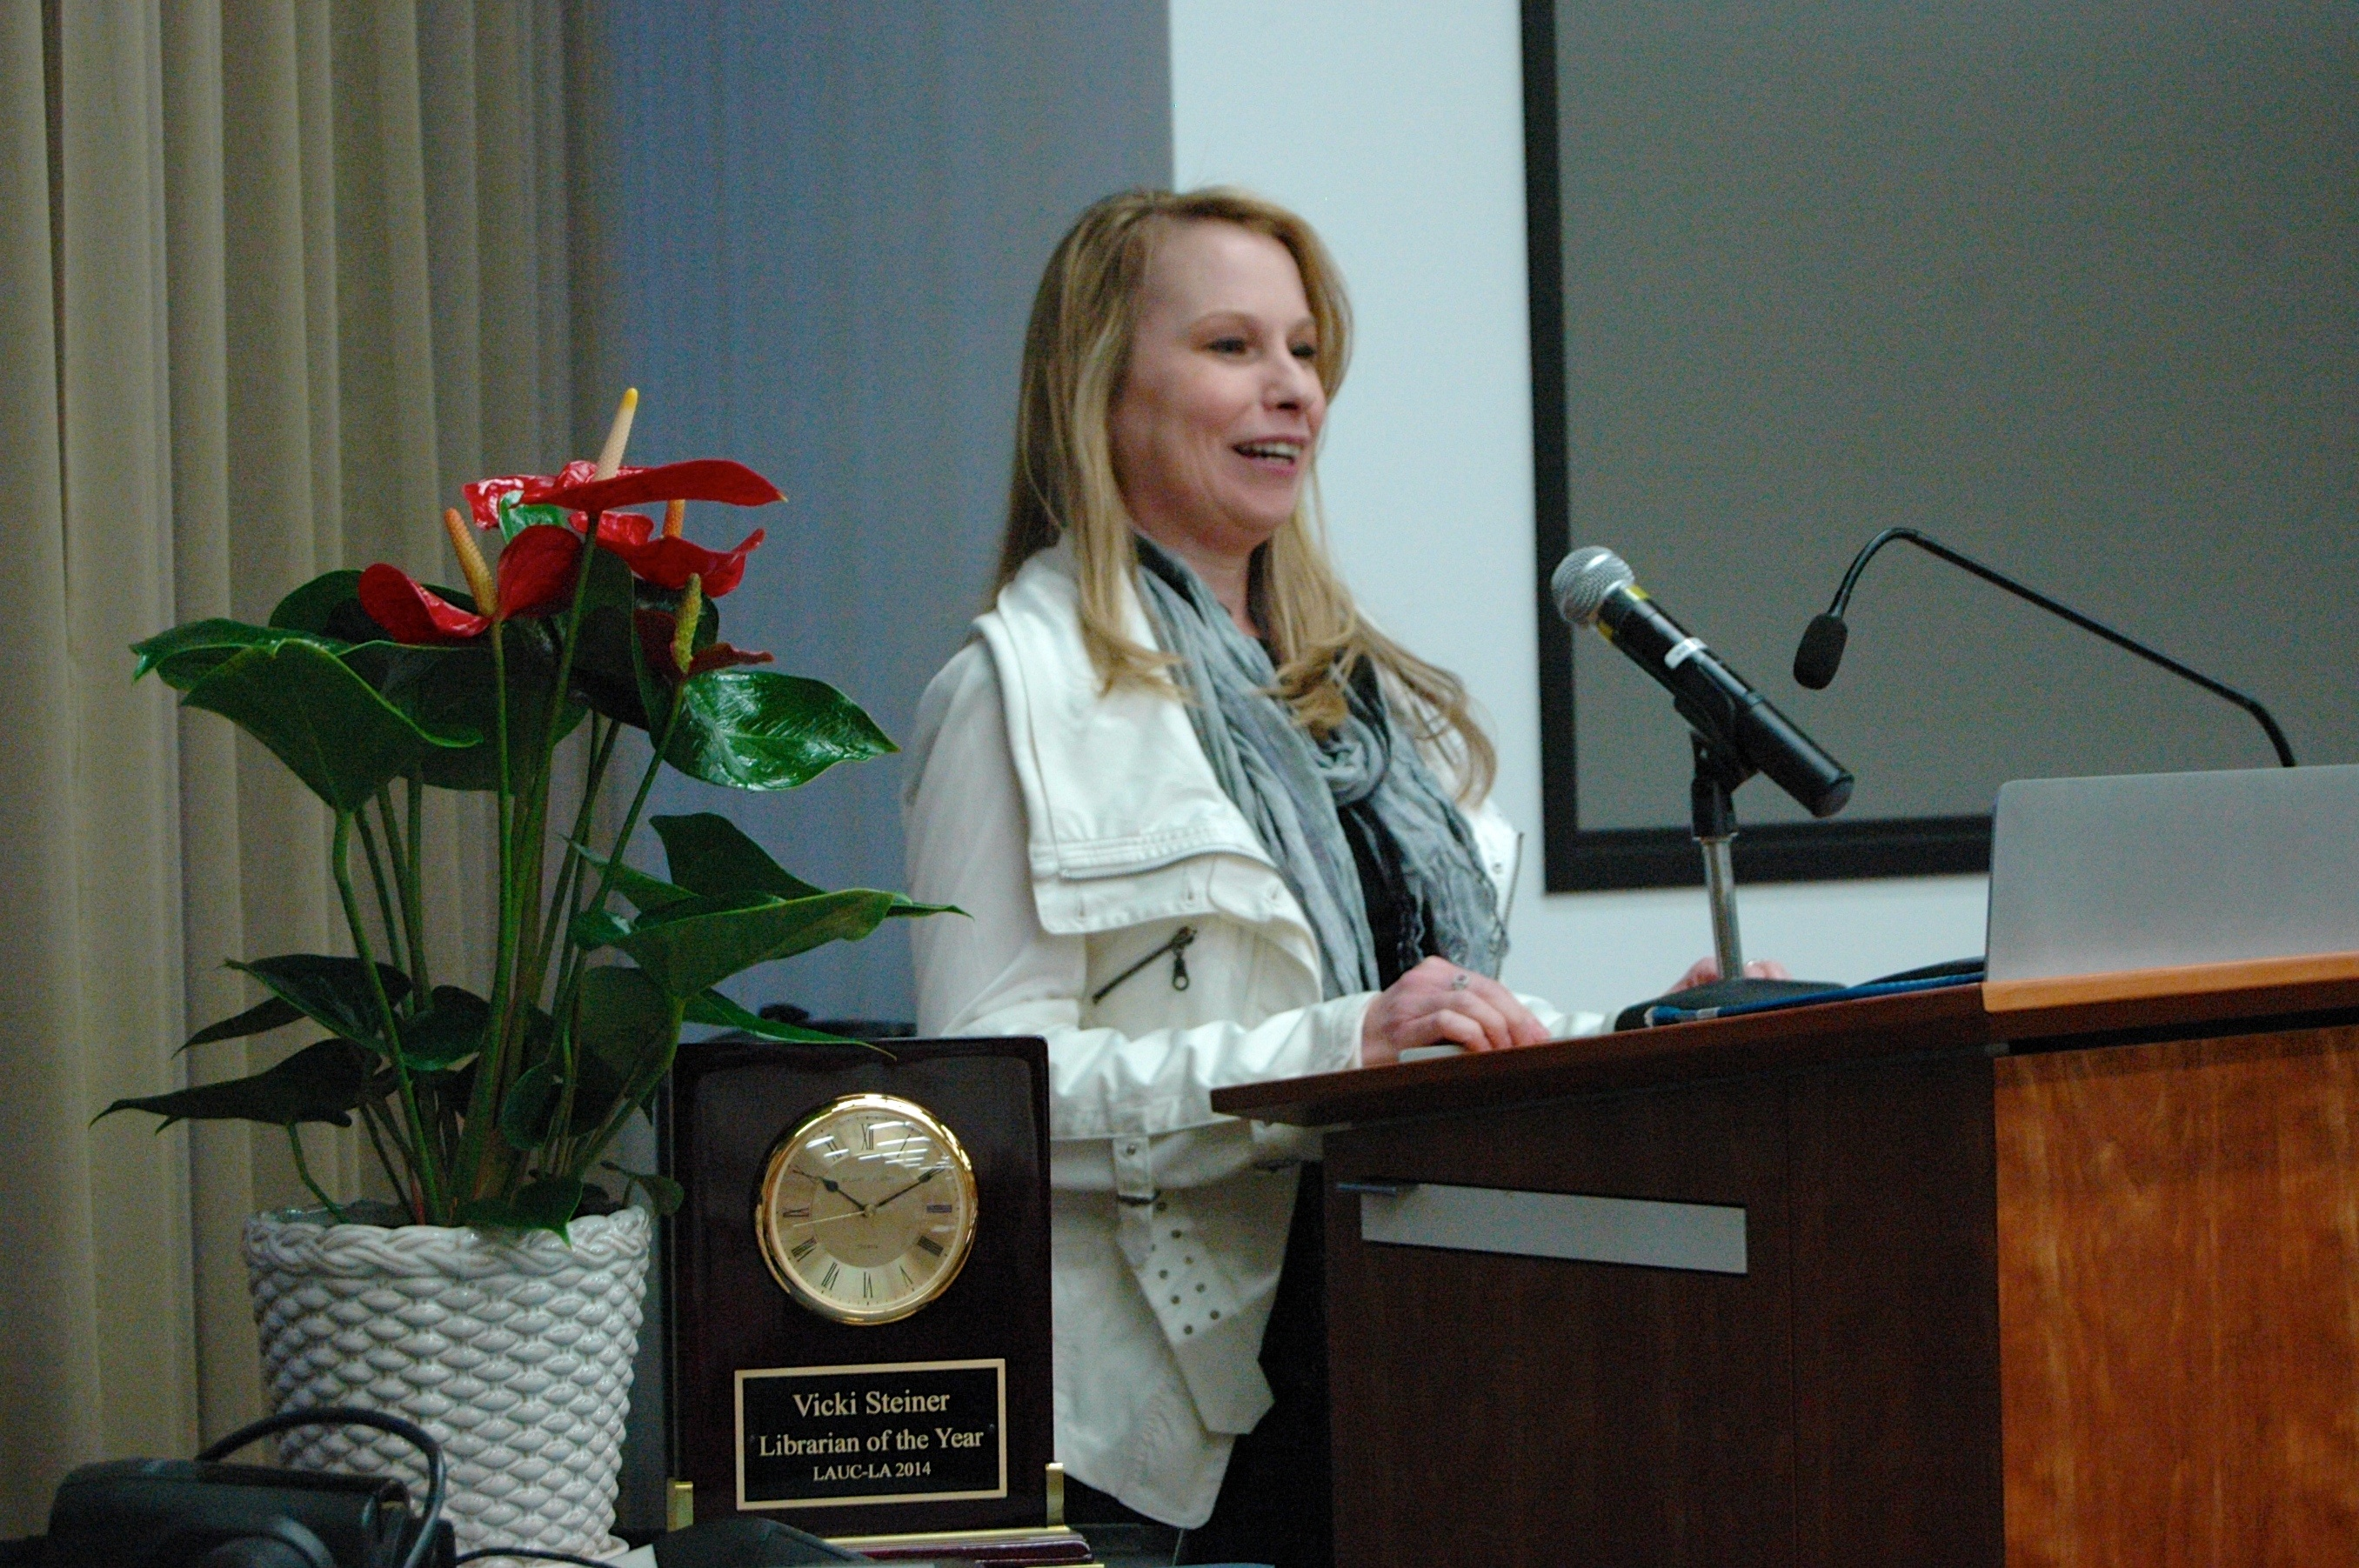 Vicki Steiner at the podium delivering acceptance speech; Librarian of the Year prize (clock) with flowers to the left.